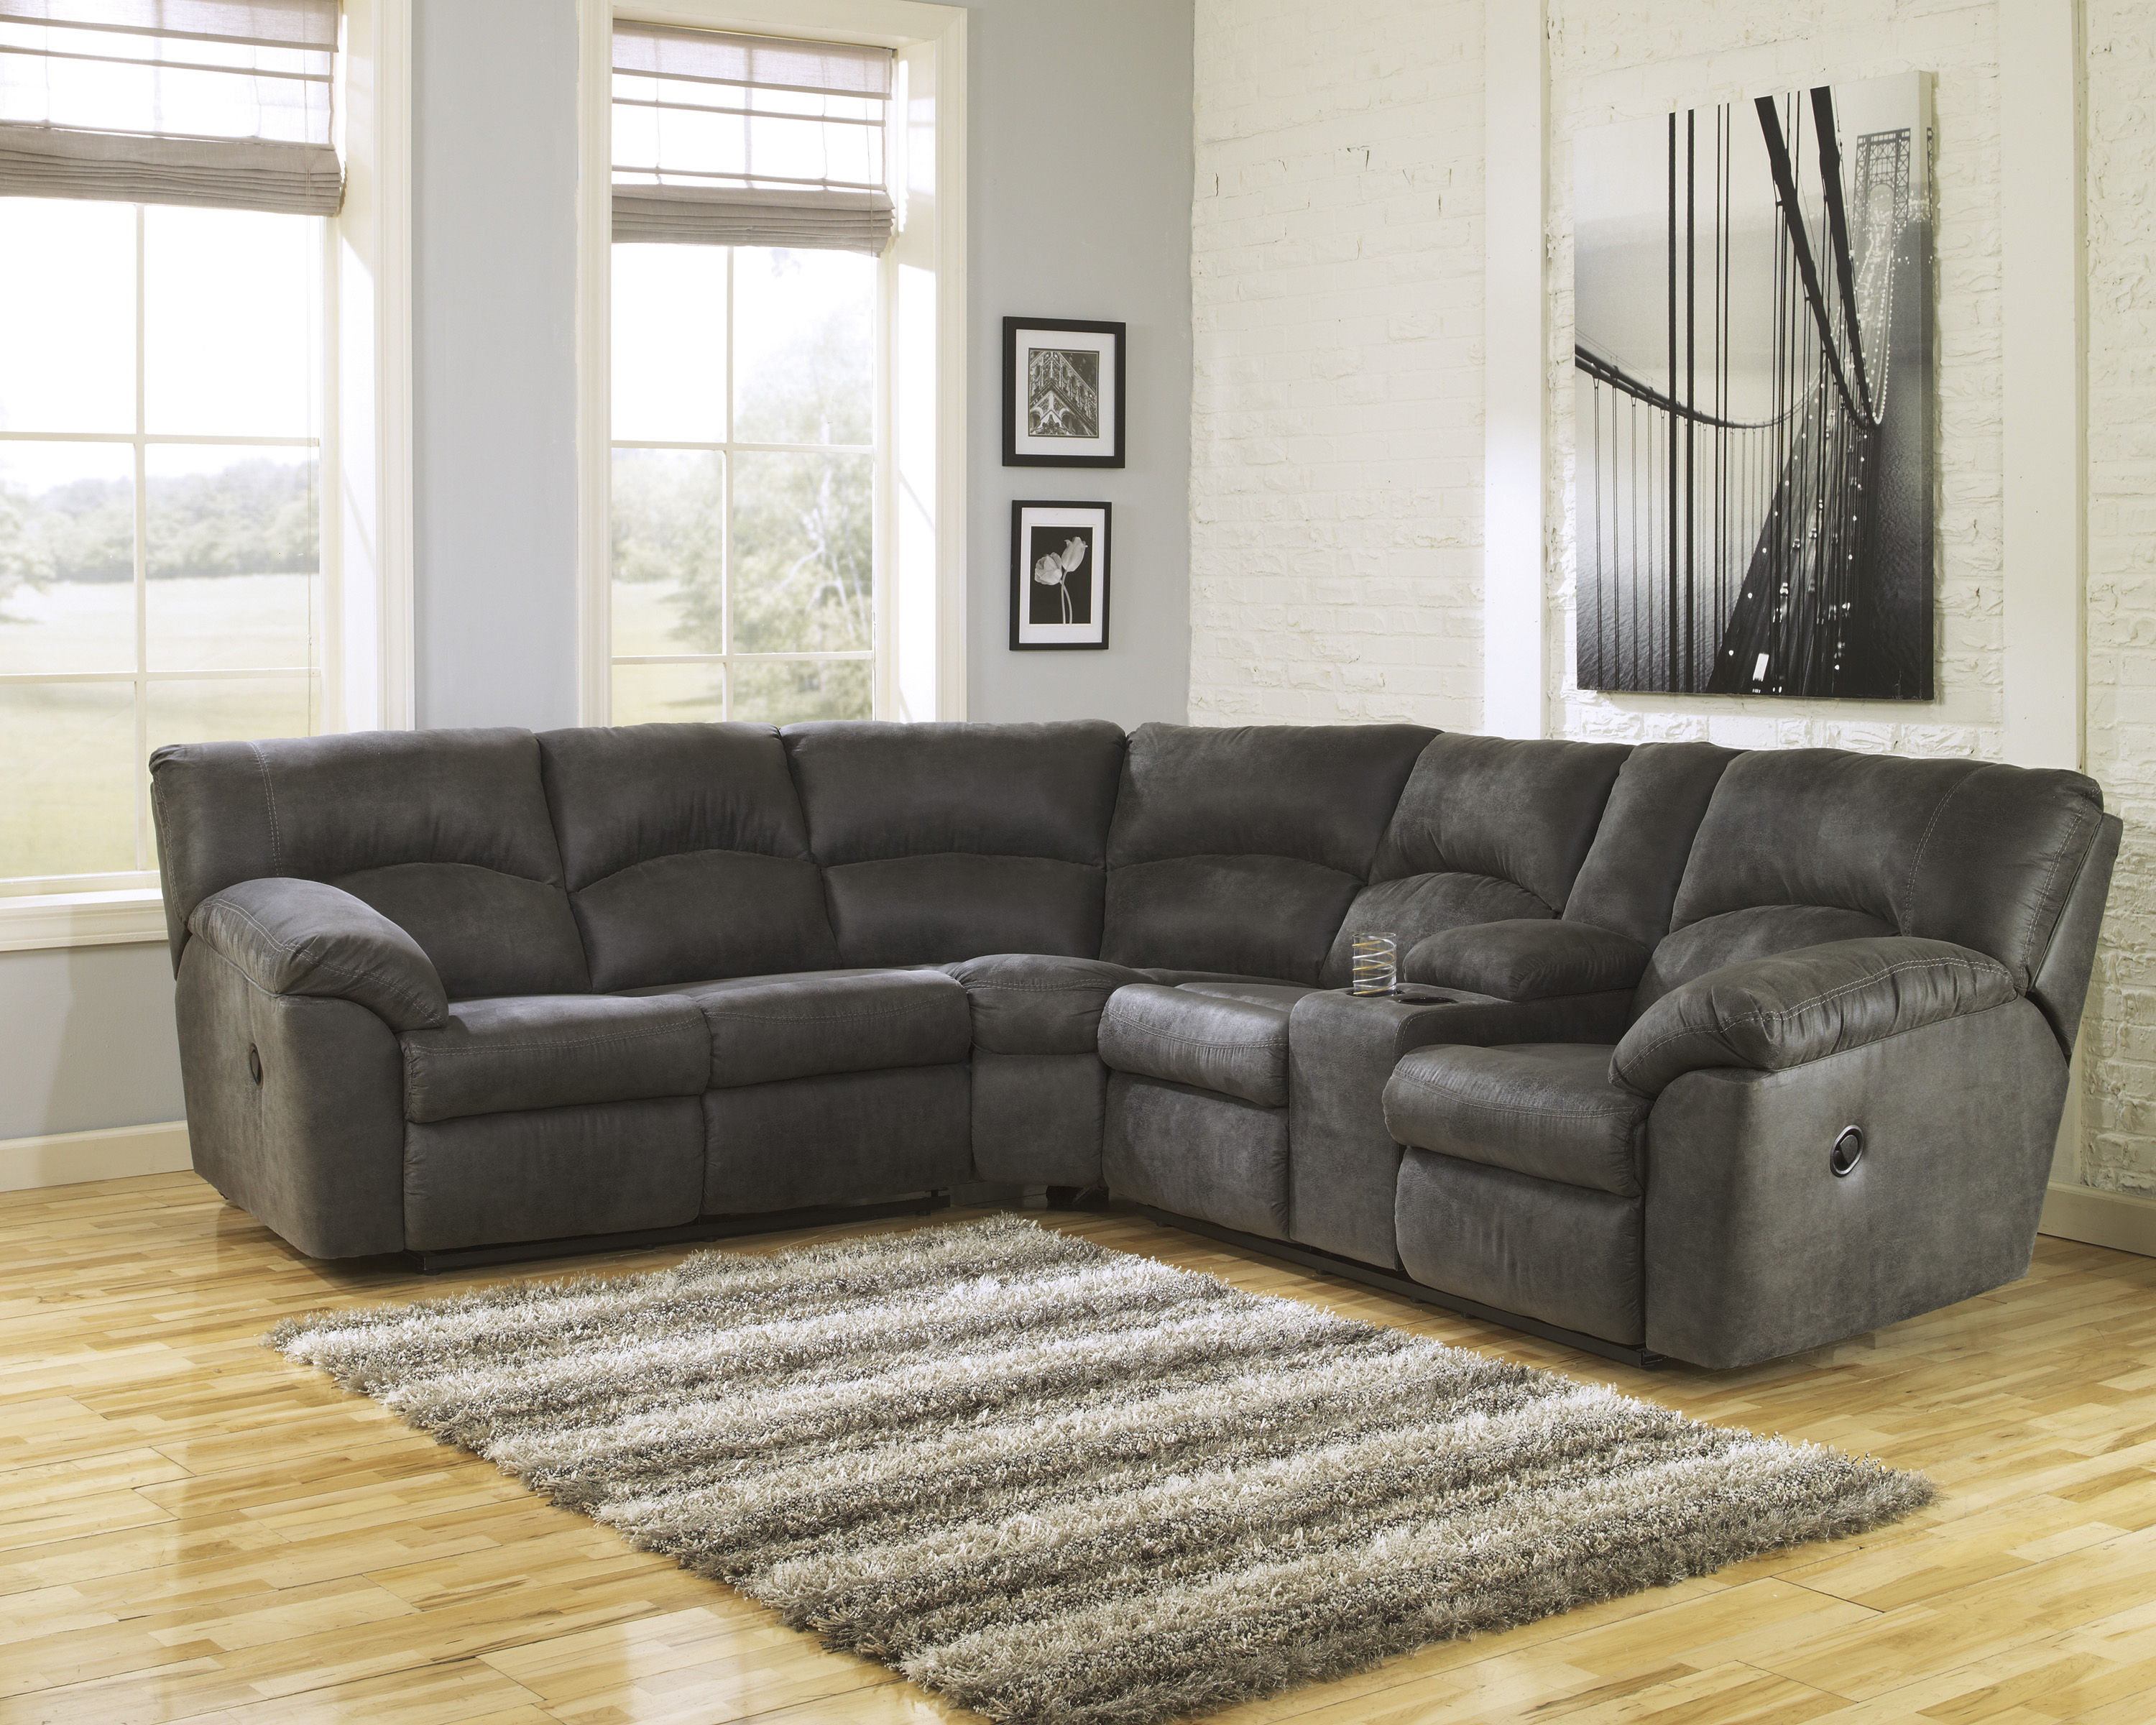 Ashley Furniture Tambo Pewter Sectional The Classy Home